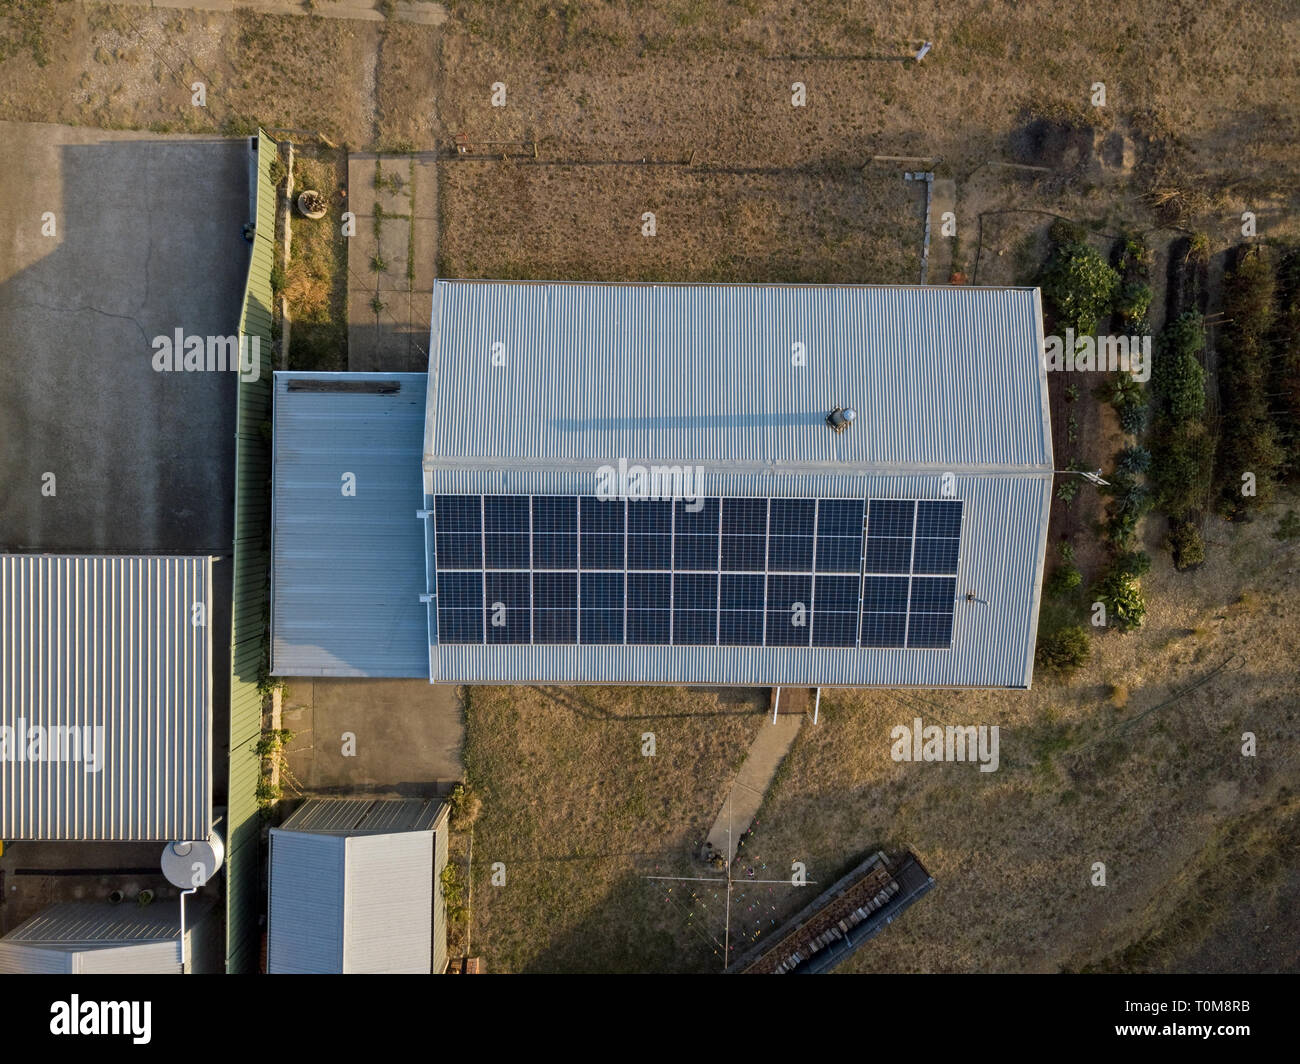 Solar panels roof aerial view in an Australian backyard with other sheds nearby. Victoria, Australia. - Stock Image